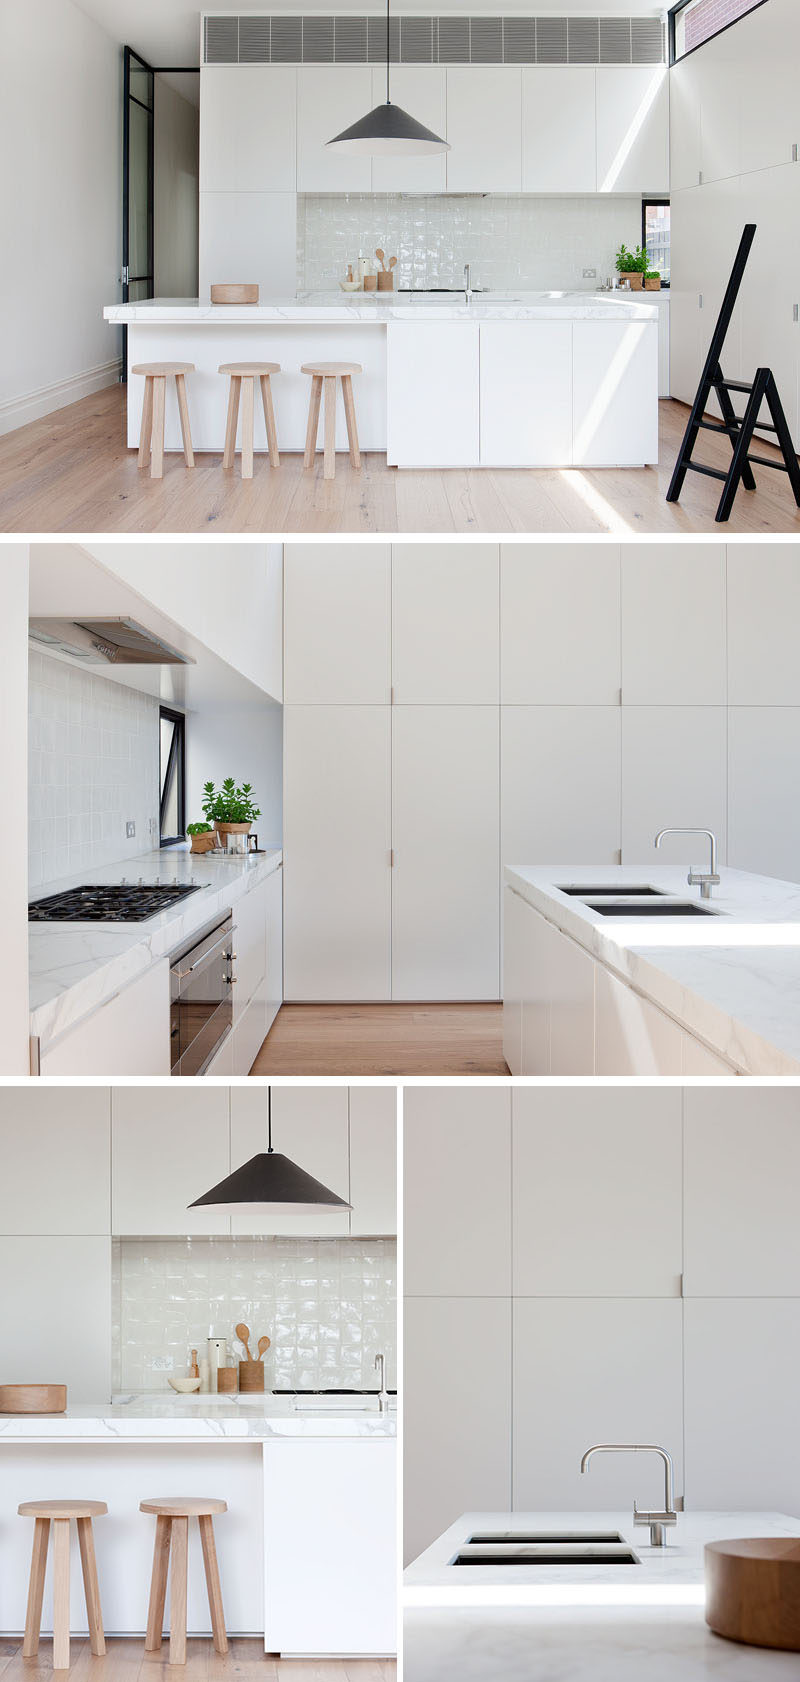 In this modern kitchen, minimalist white cabinets and white tiles match the white island, and keep the space bright and airy. #WhiteKitchen #ModernKitchen #KitchenDesign #WhiteCabinets